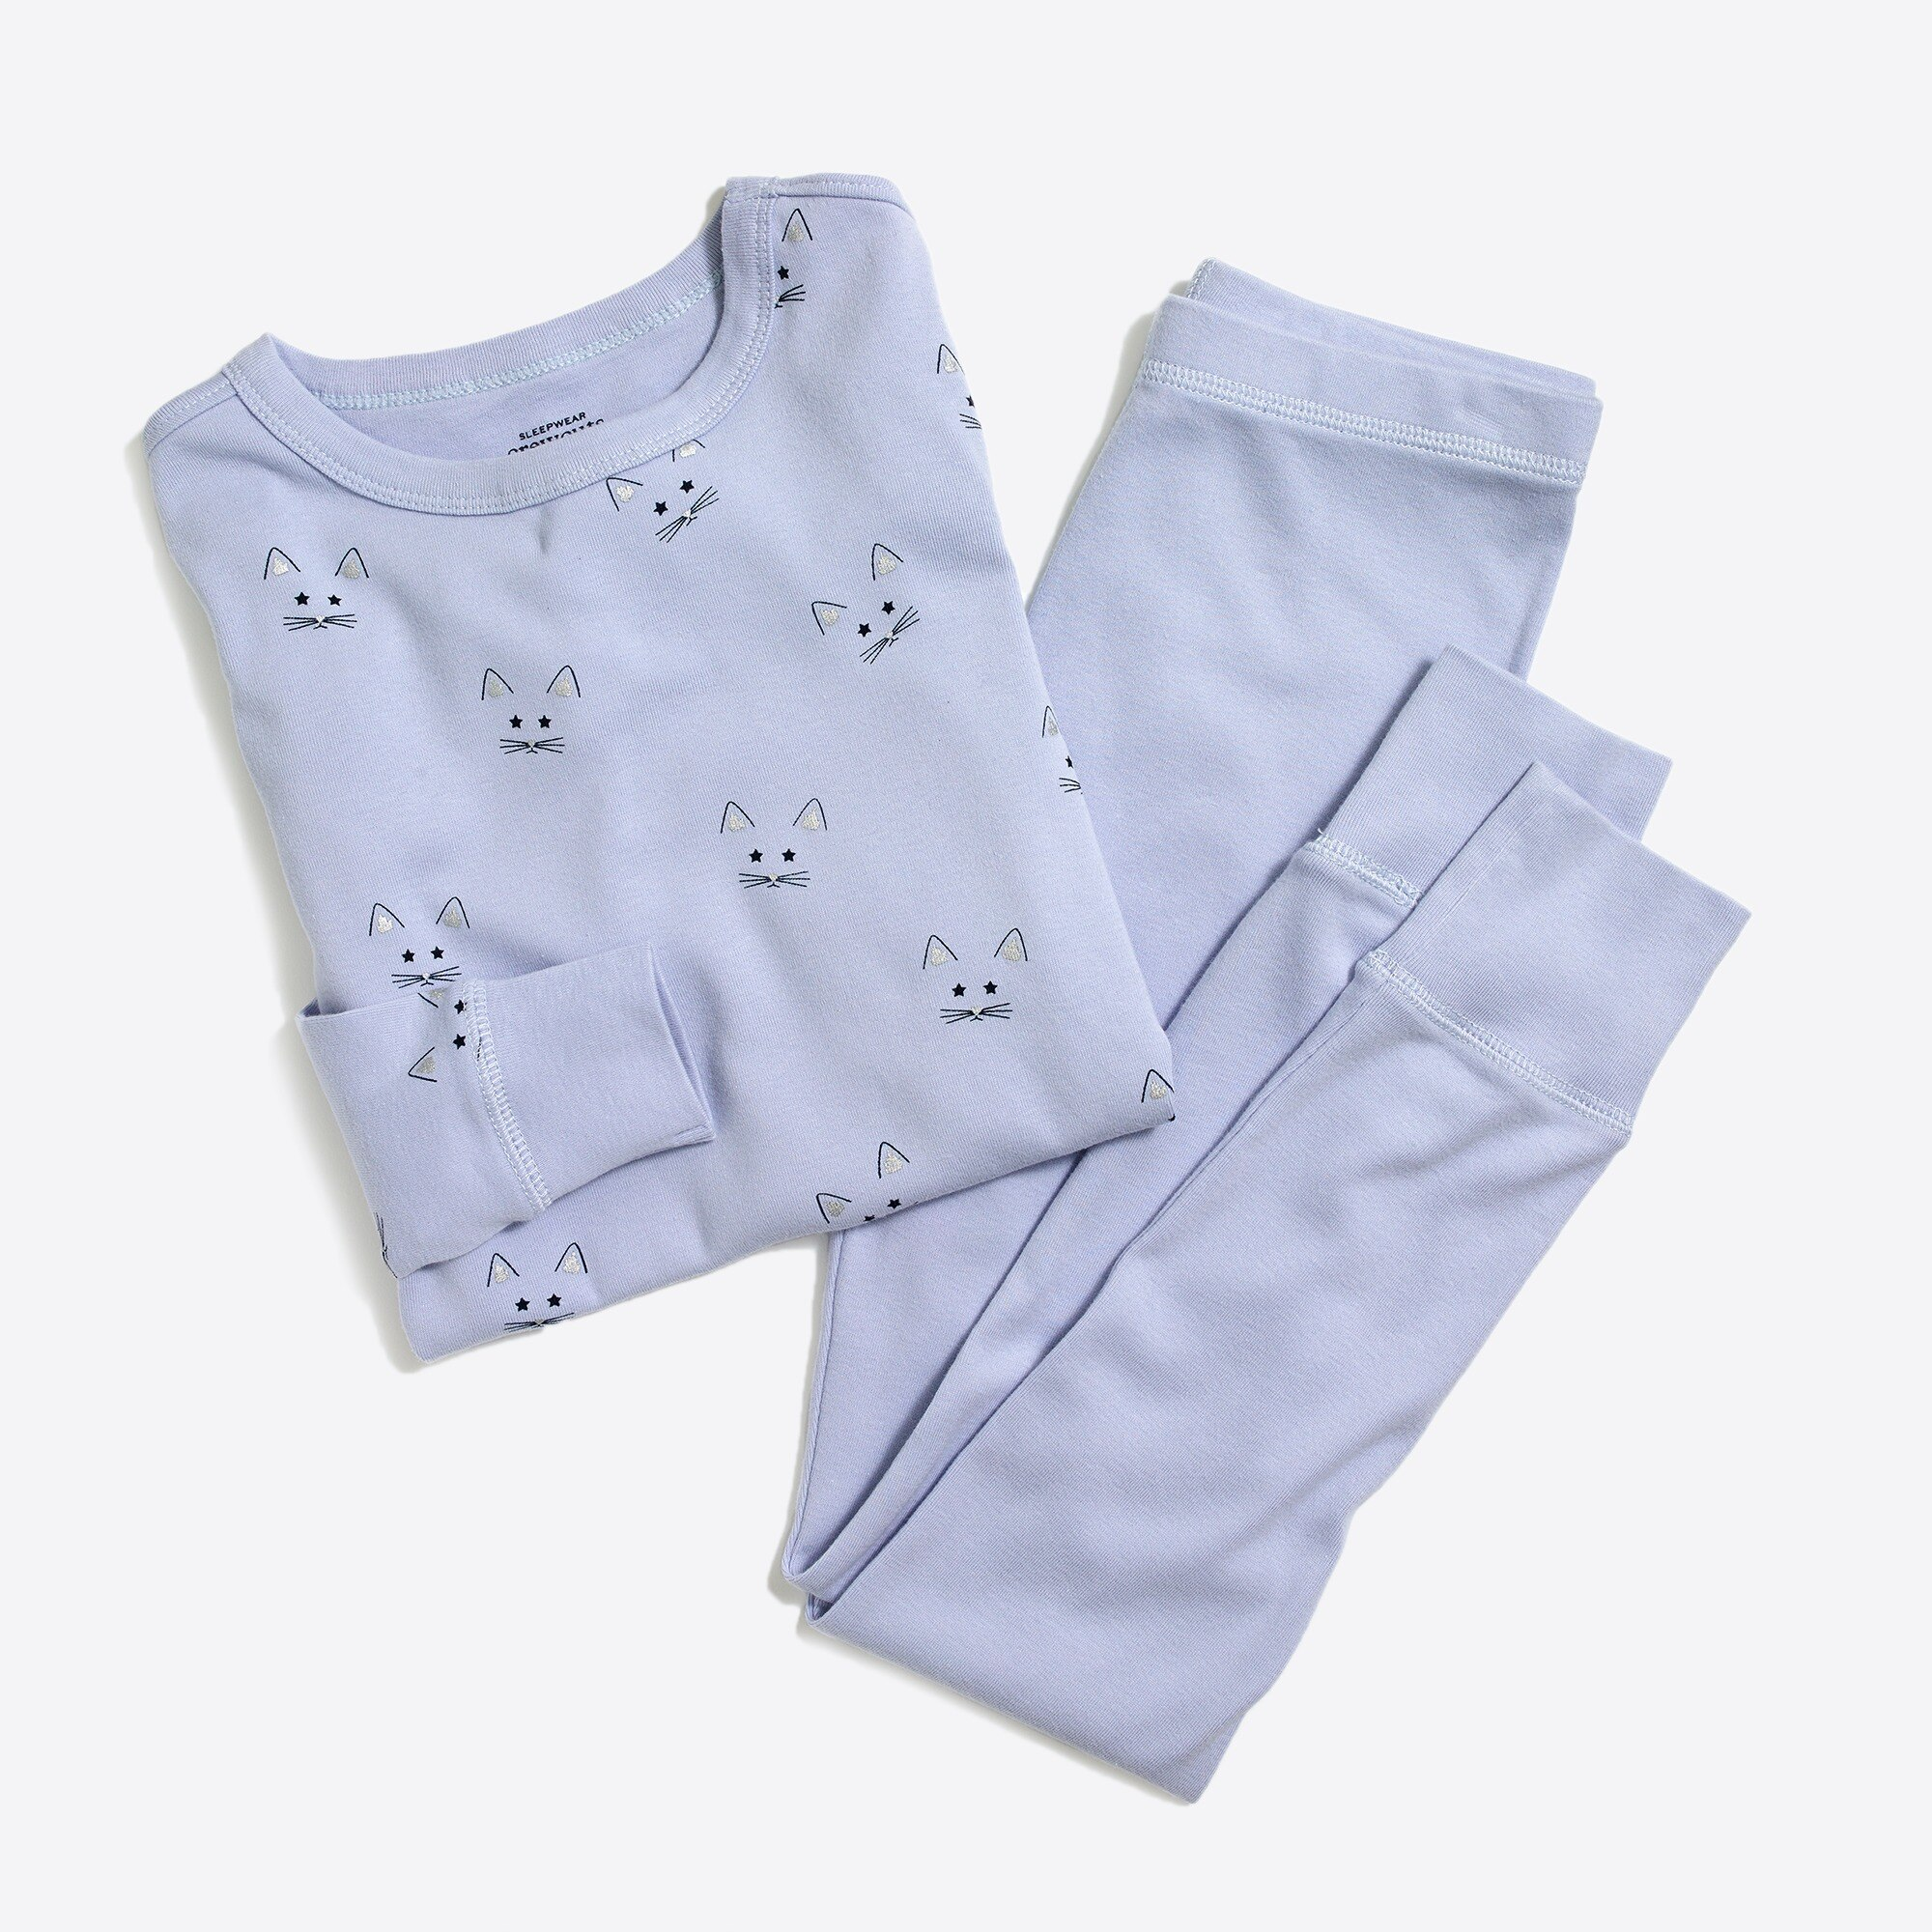 Image 1 for Girls' kitty pajama set